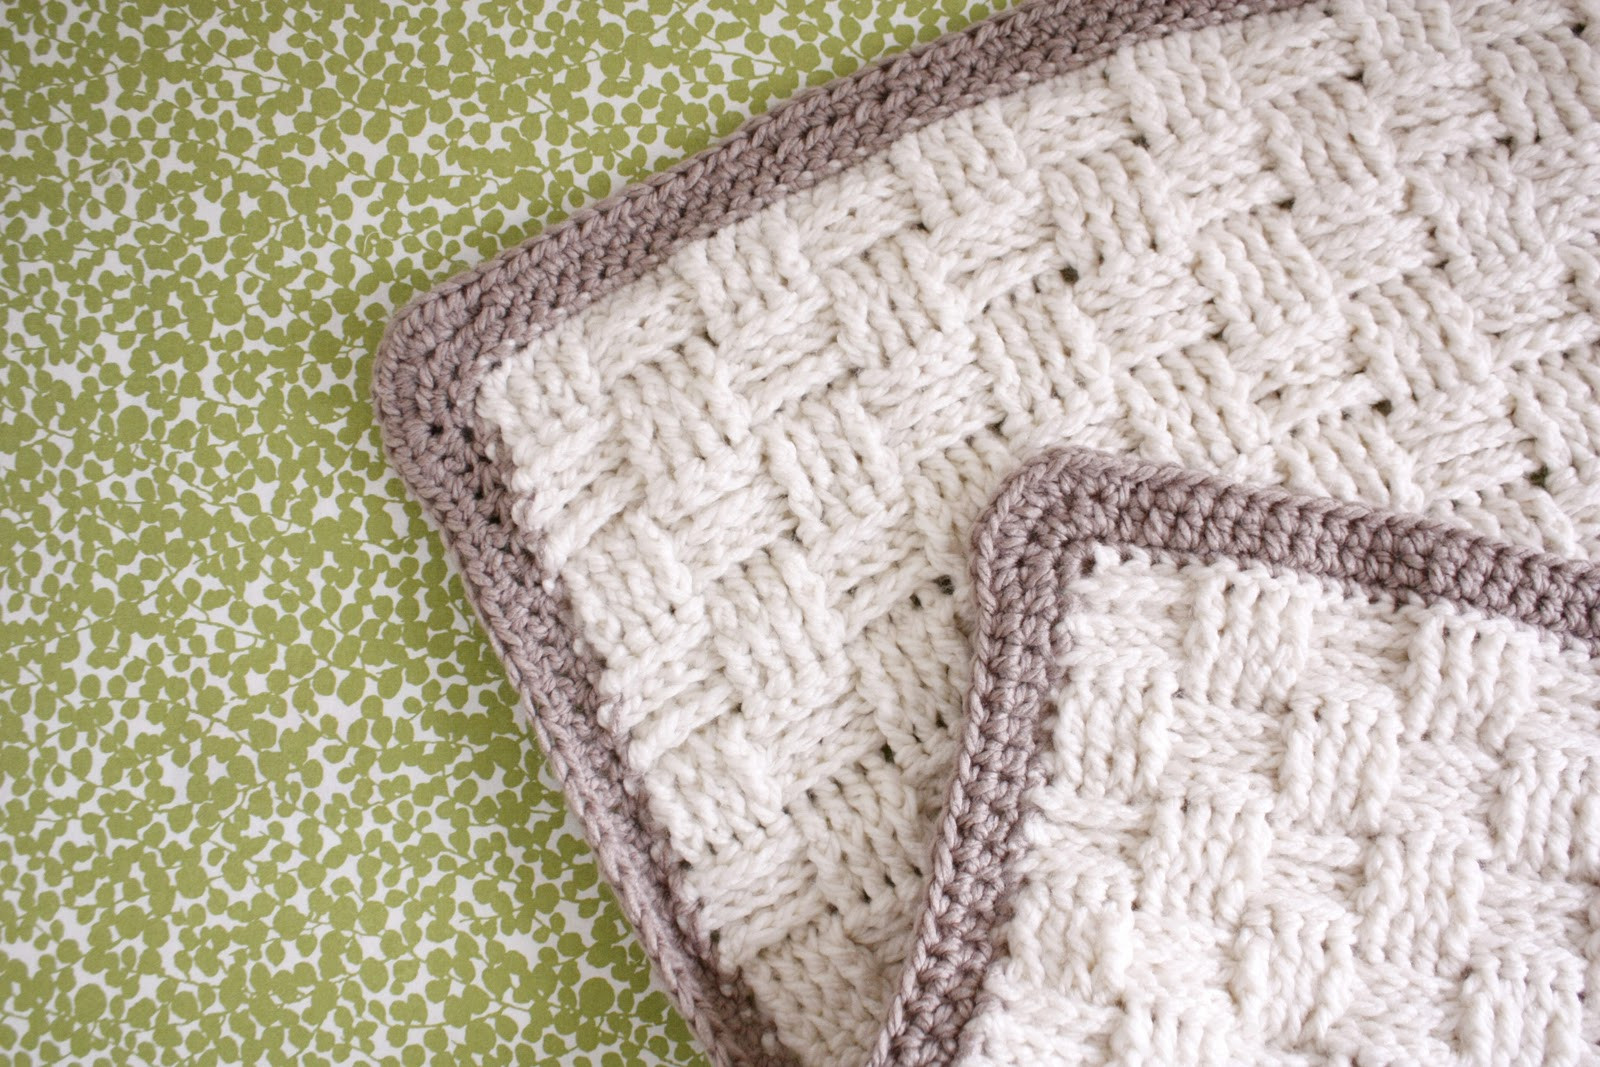 Awesome Crochet Edging for Baby Blanket Youtube Crochet Blanket Patterns Youtube Of Innovative 46 Images Crochet Blanket Patterns Youtube